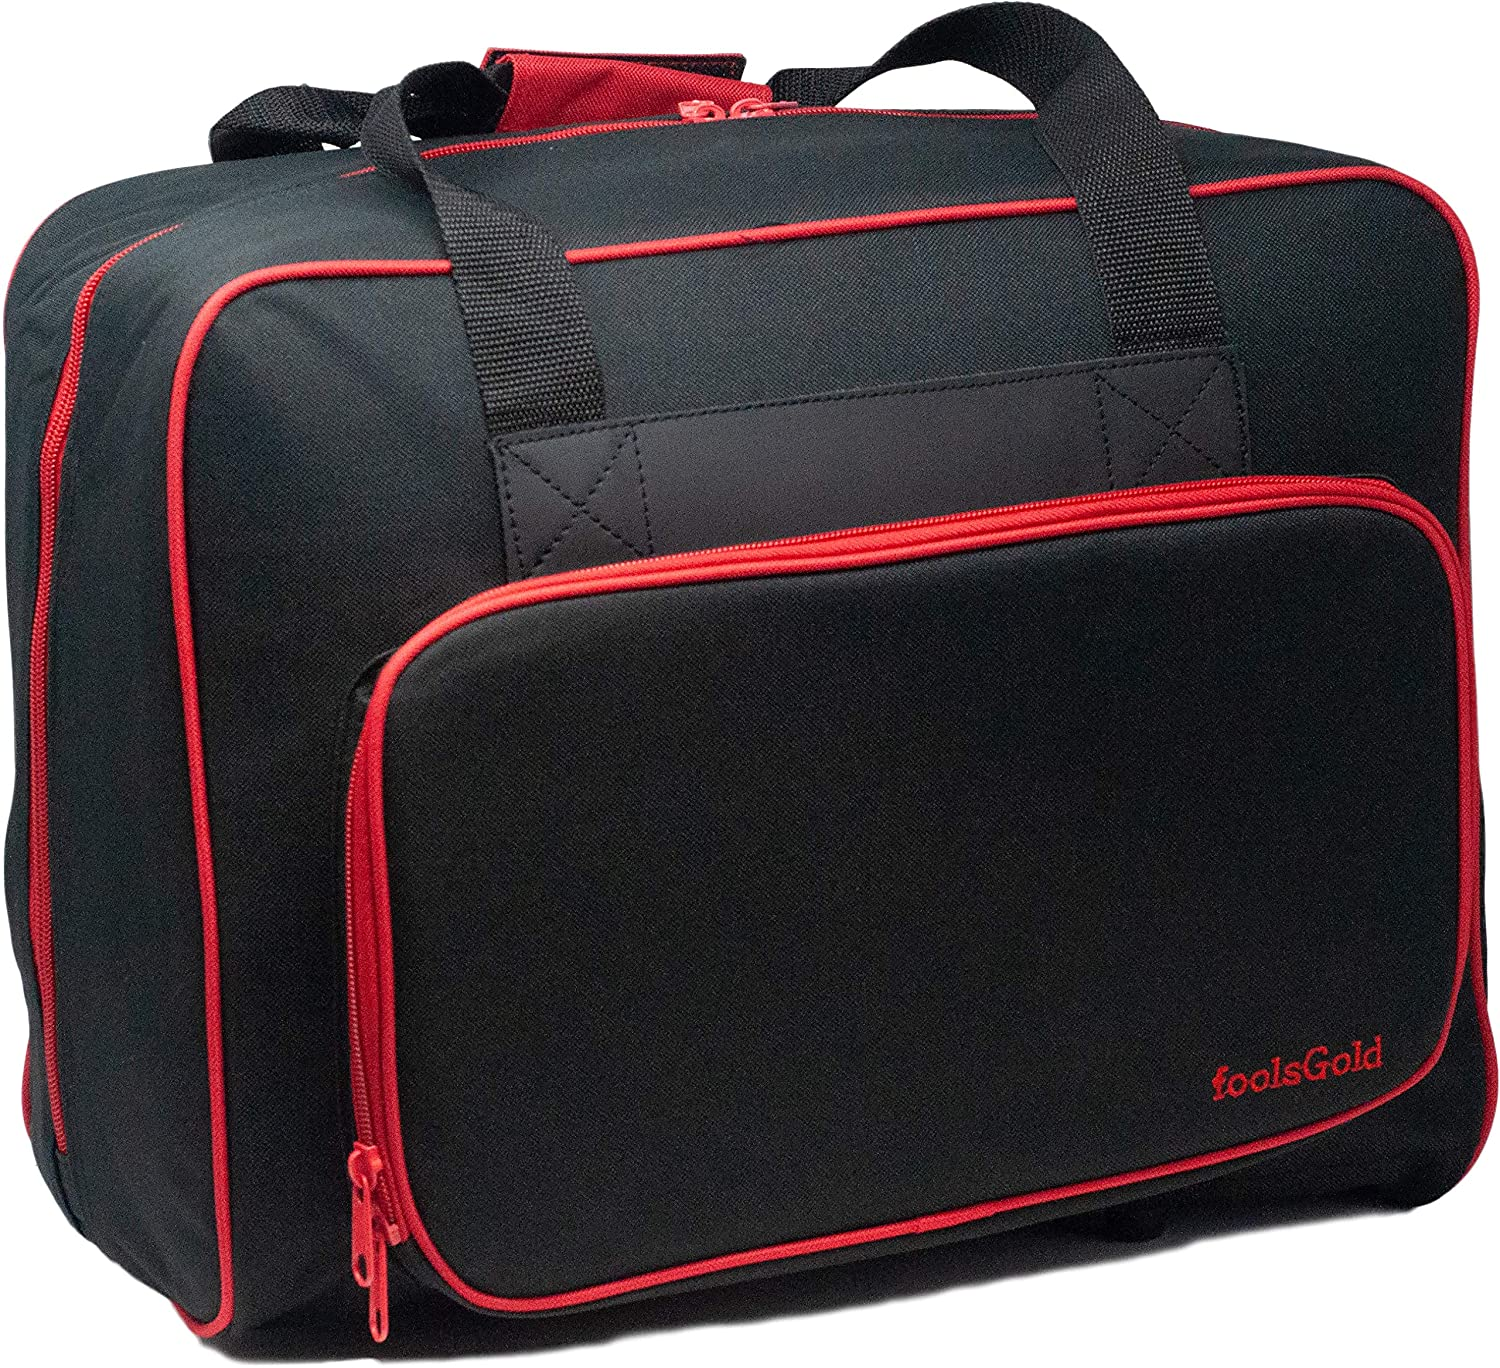 foolsGold Pro Thick Padded Sewing Machine Bag Carry Case Black//Grey